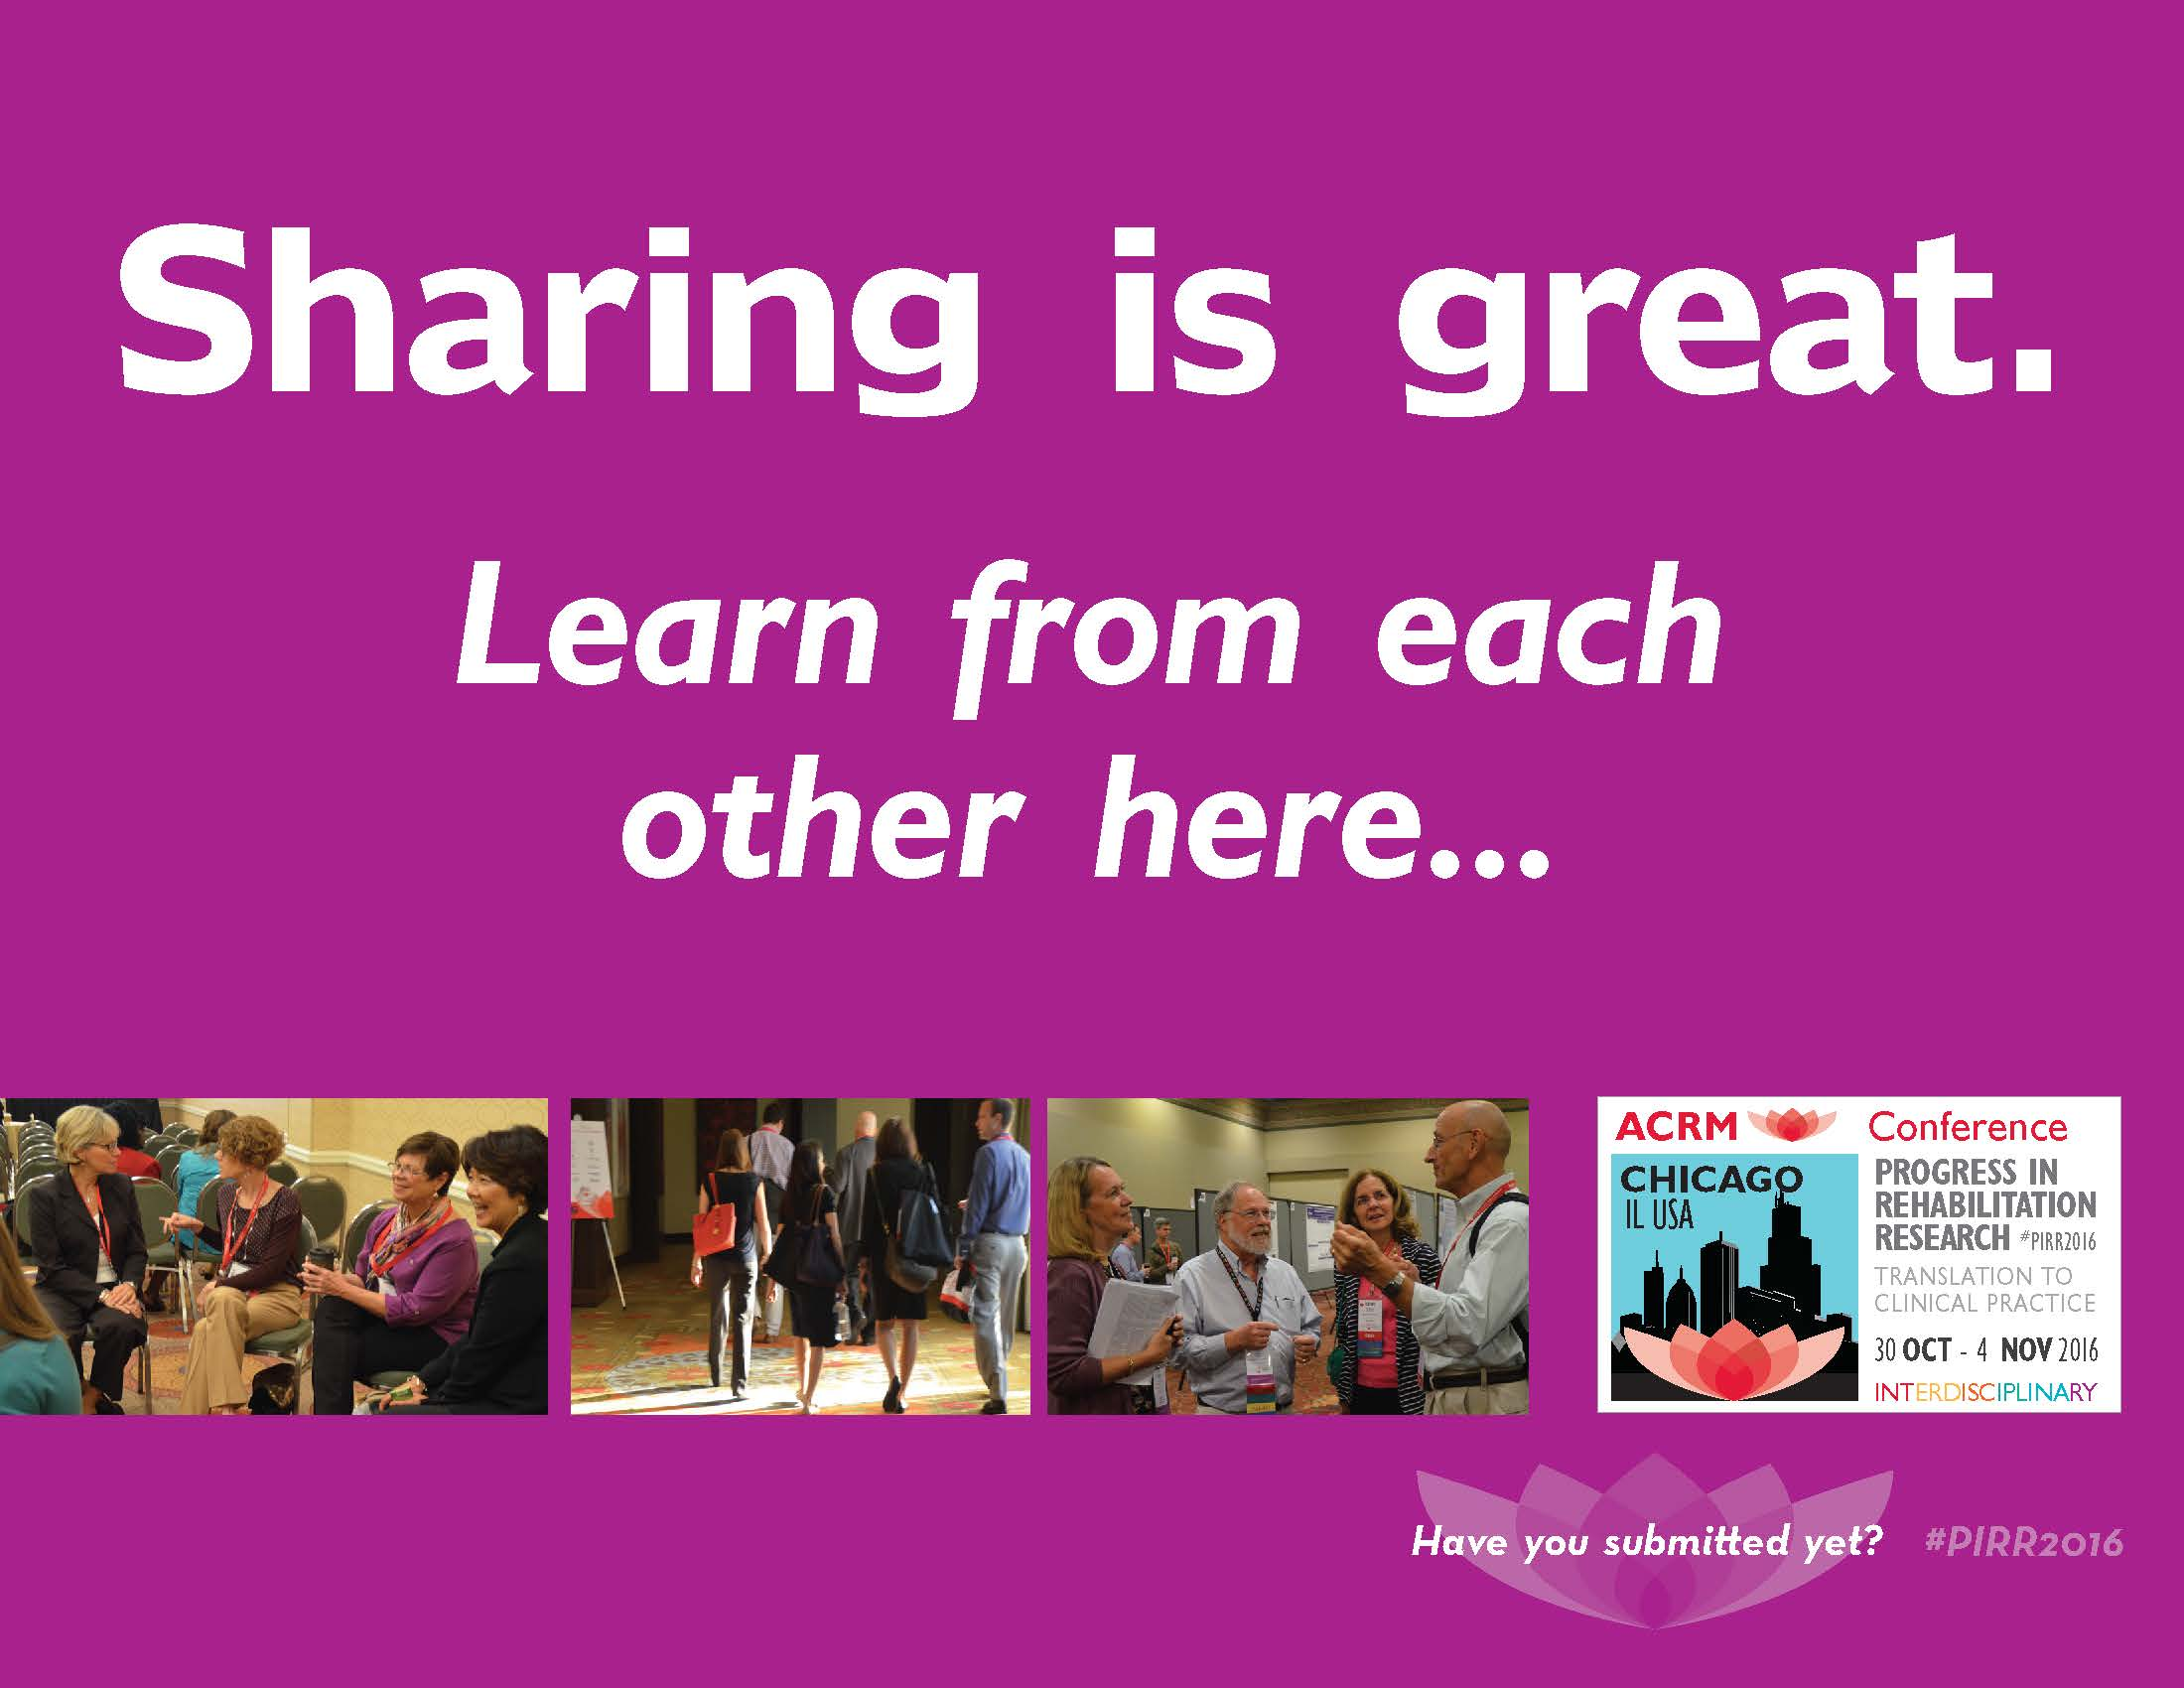 Sharing is great. Learn from each other here...